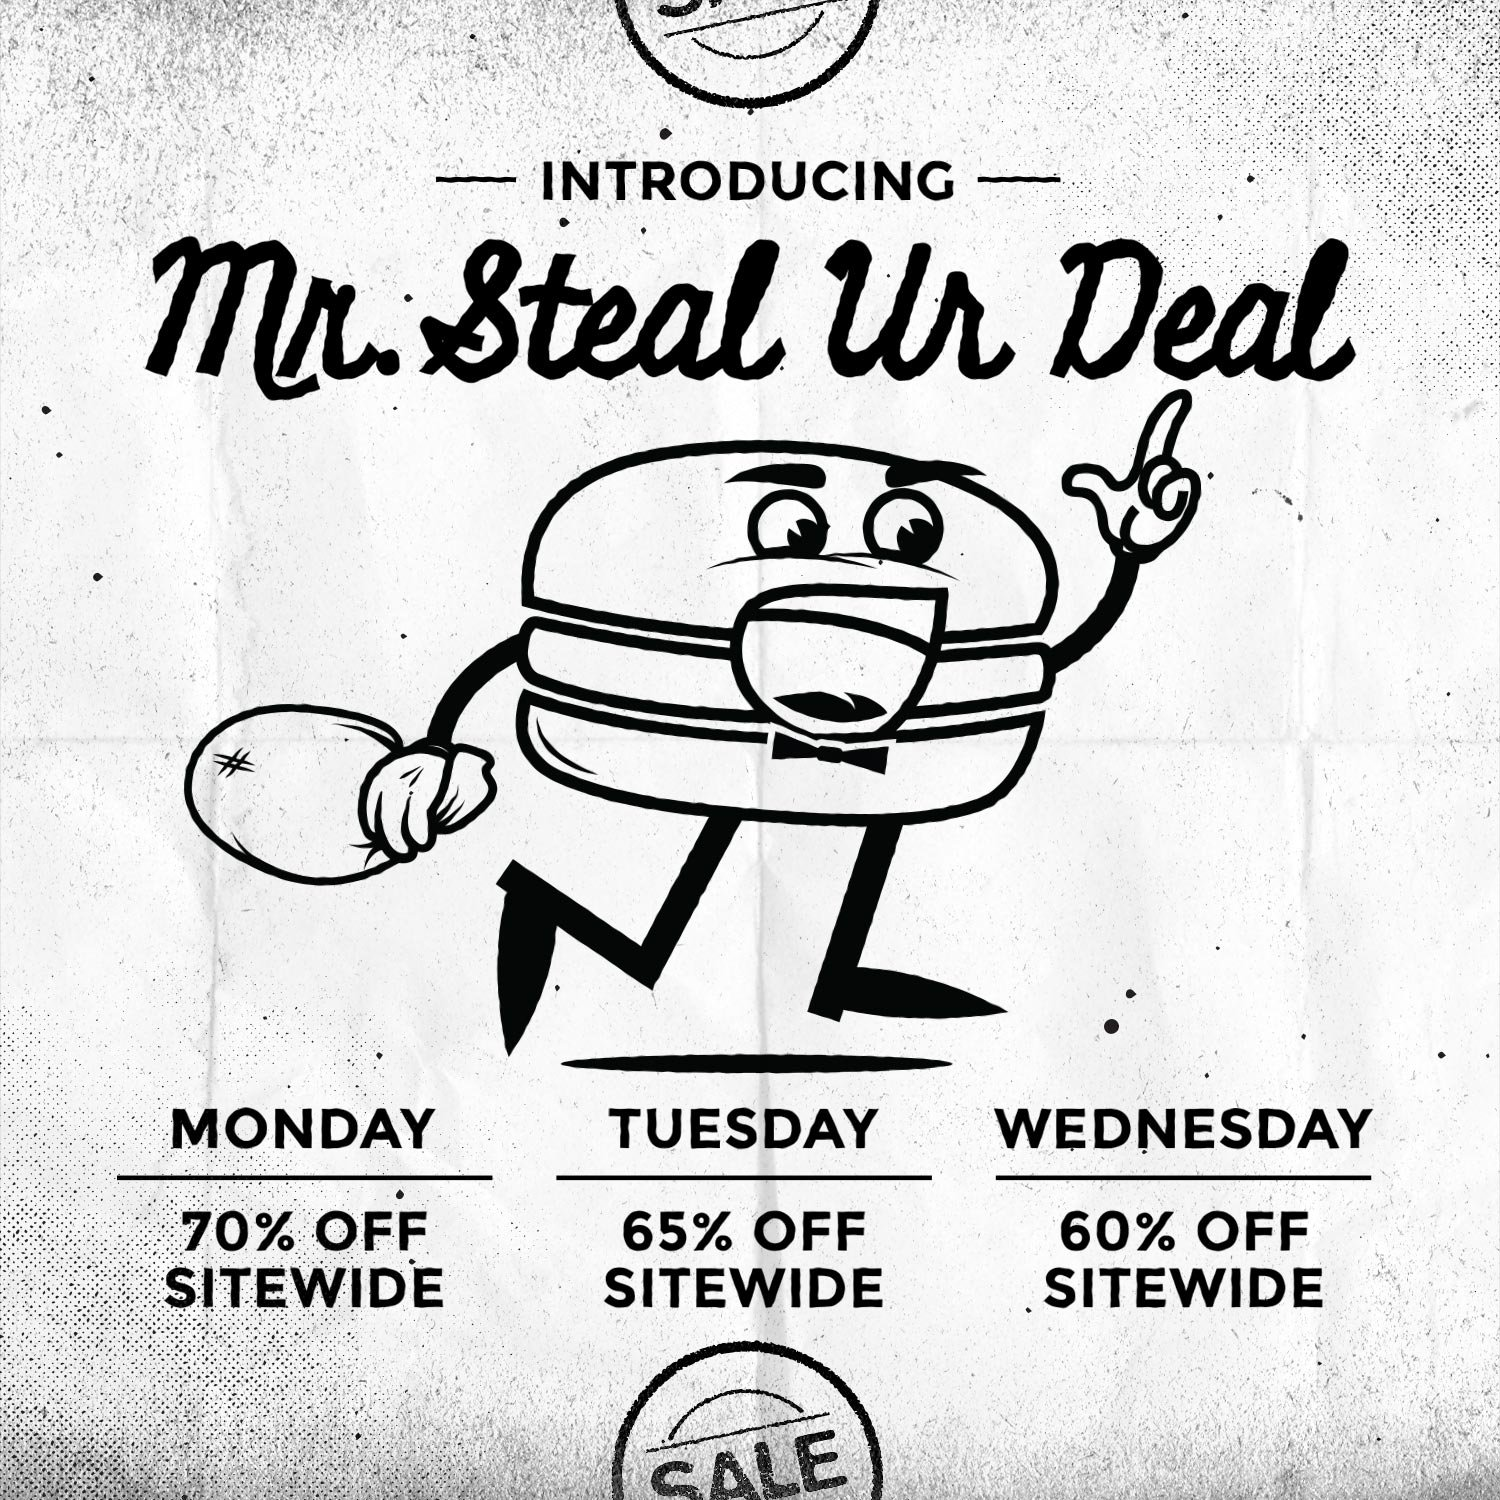 Mr. Steal Ur Deal